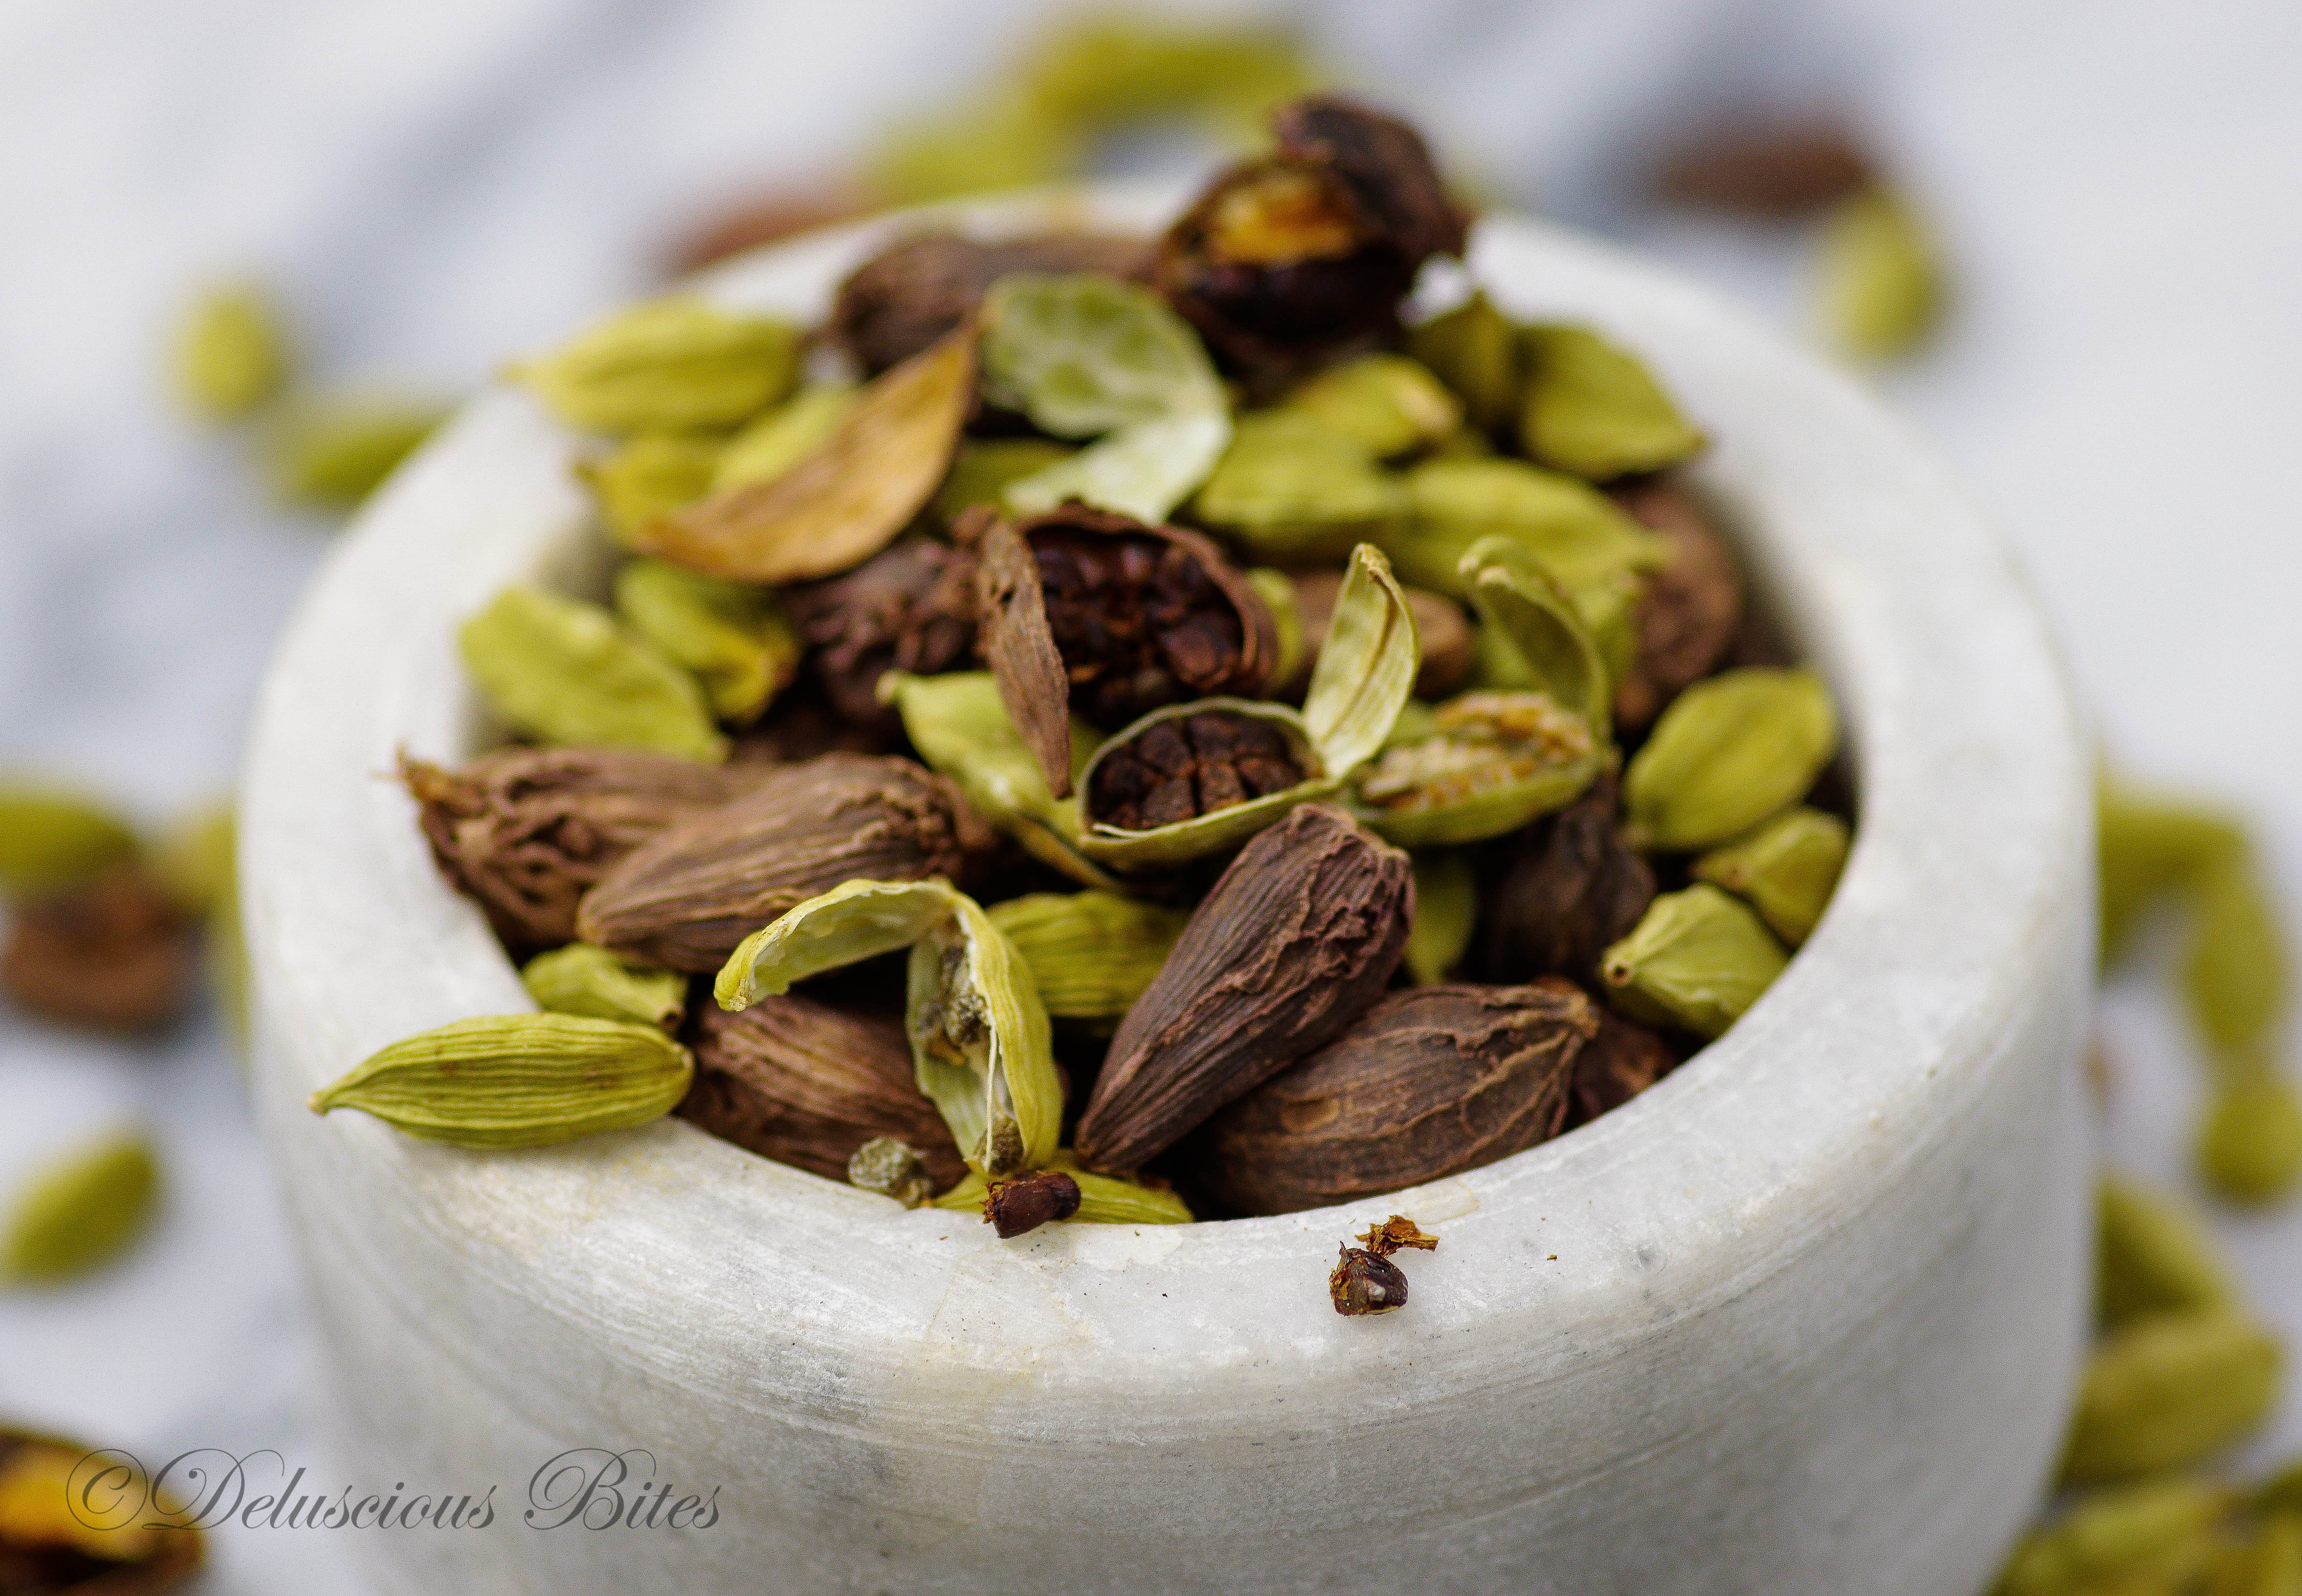 cardamom spice Find great deals on ebay for cardamom shop with confidence.